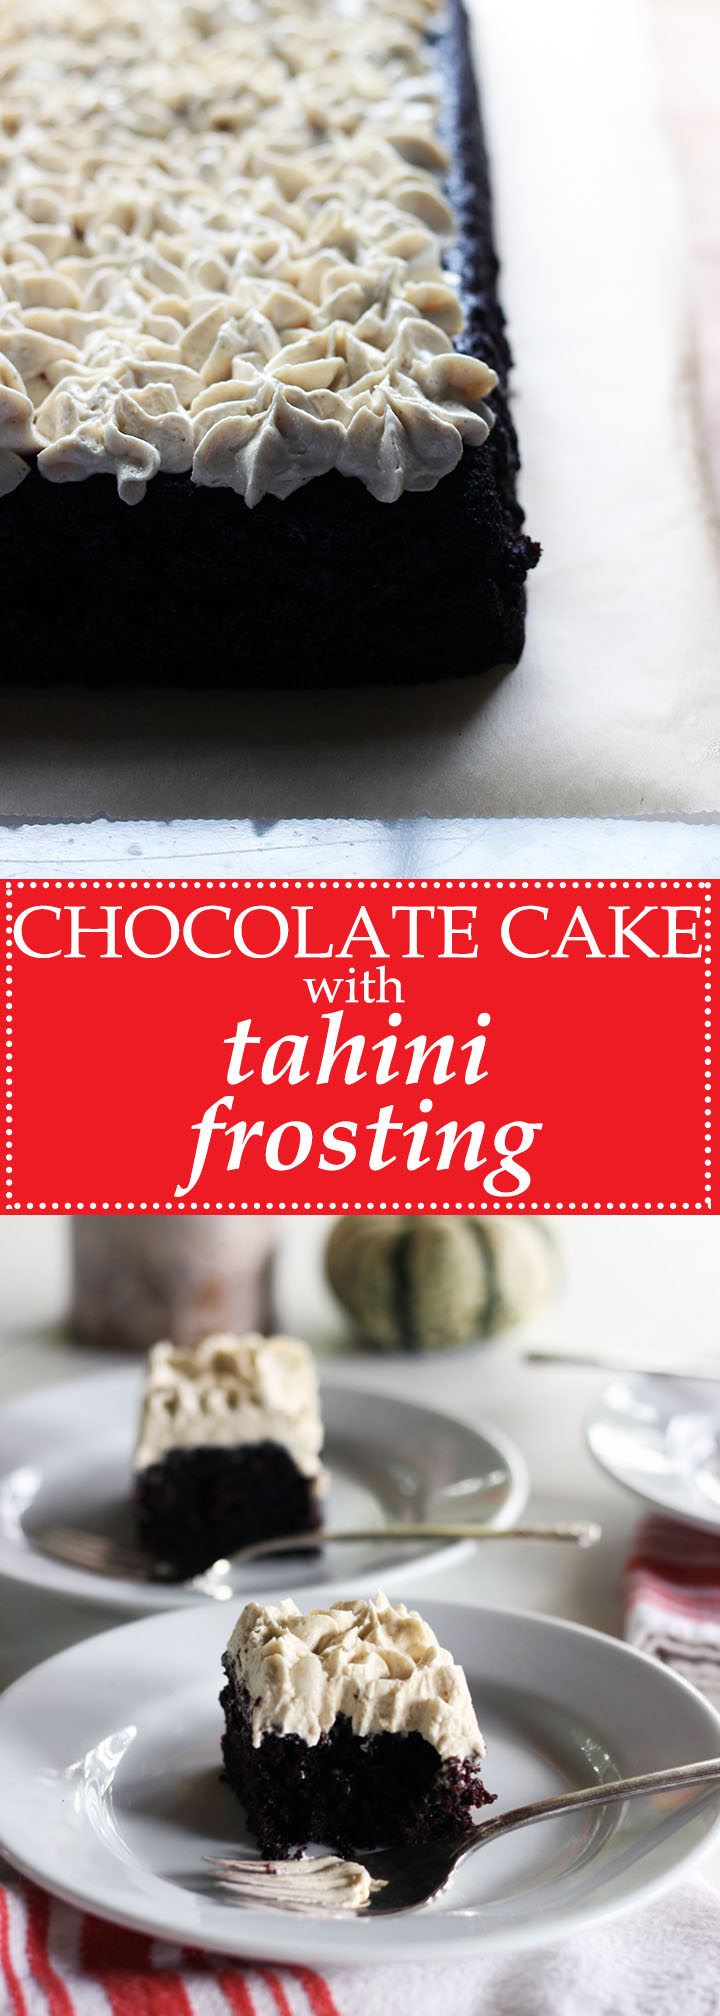 Chocolate Sheet Cake with Molly's Tahini Frosting | www.thetableofcontents.co